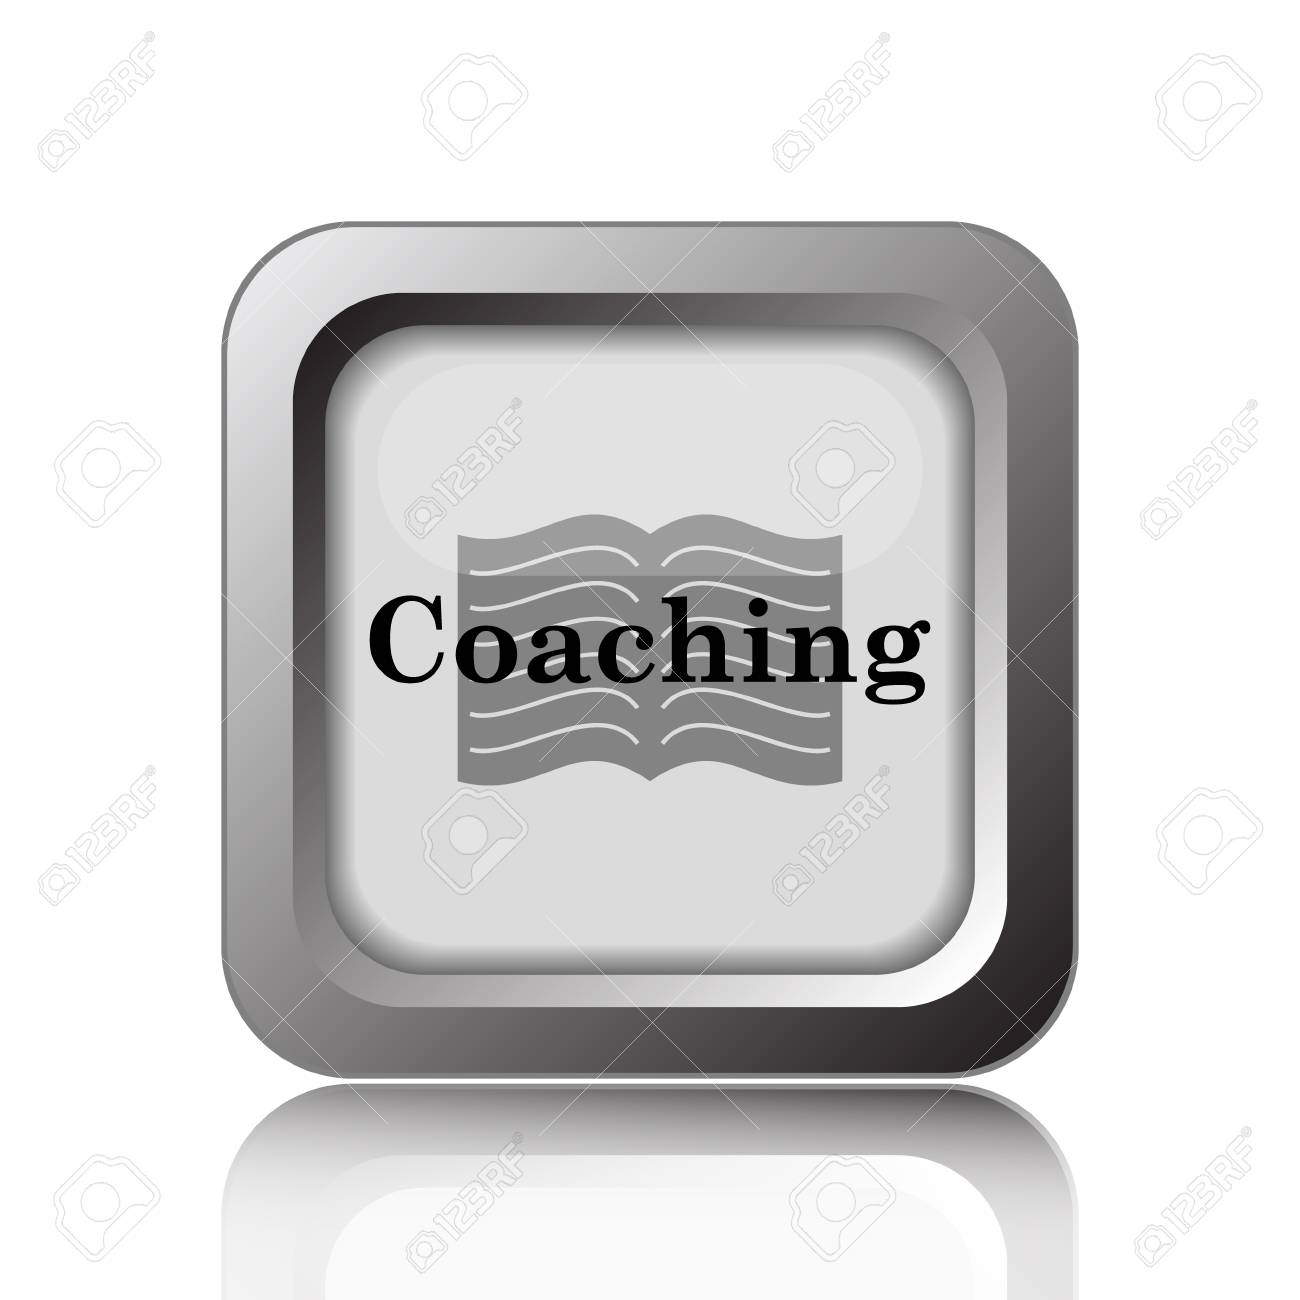 coaching icon internet button on white background stock photo